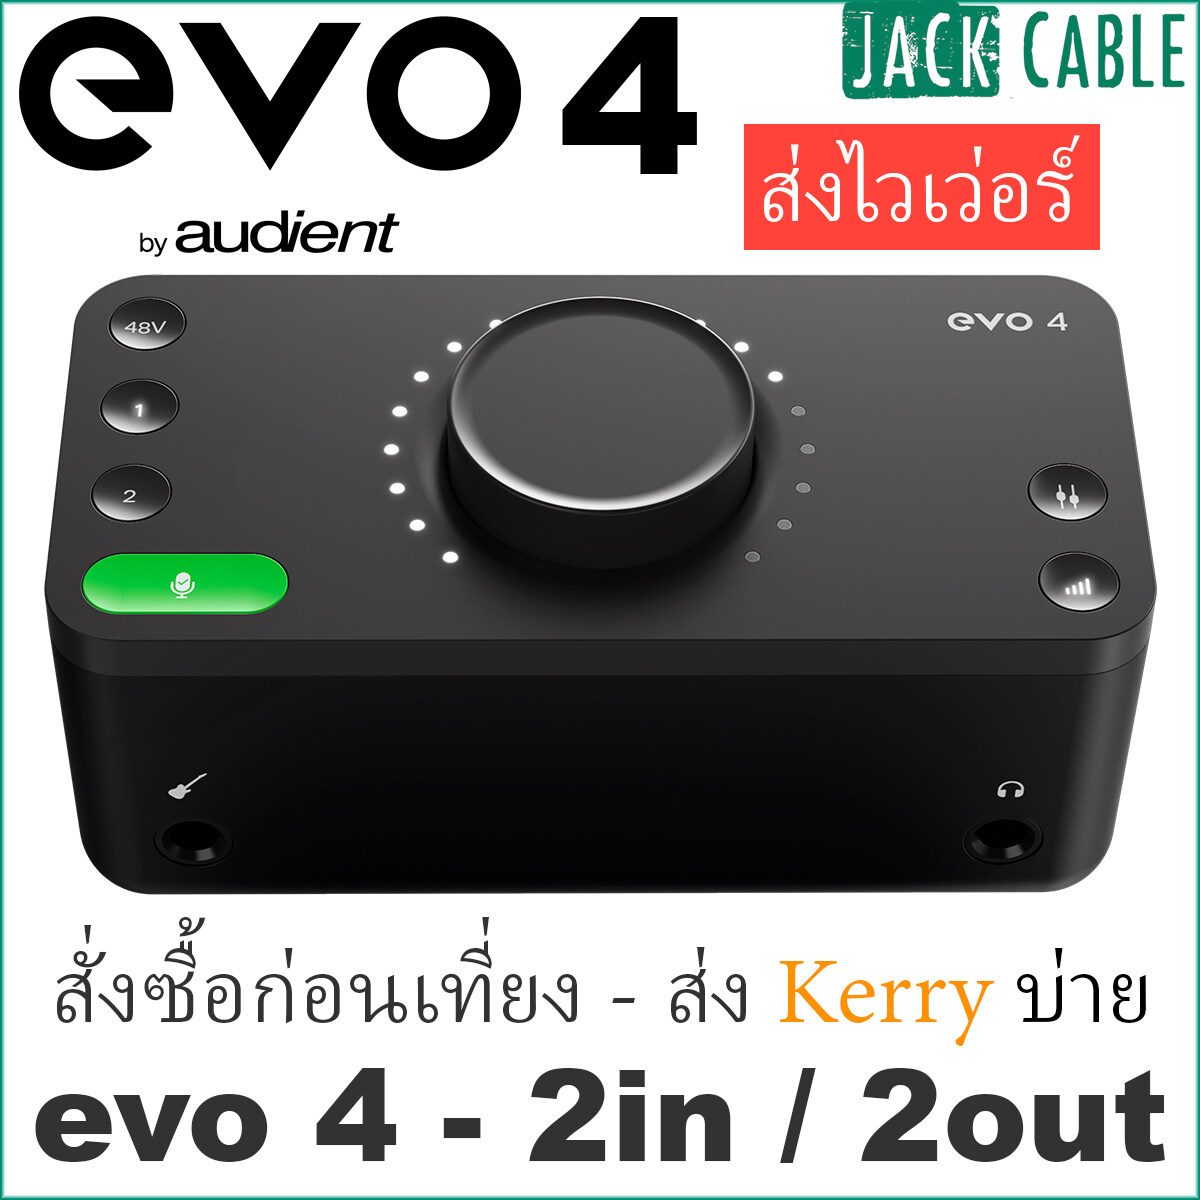 Evo 4 By Audient - 2in / 2out Usb Audio Interface.